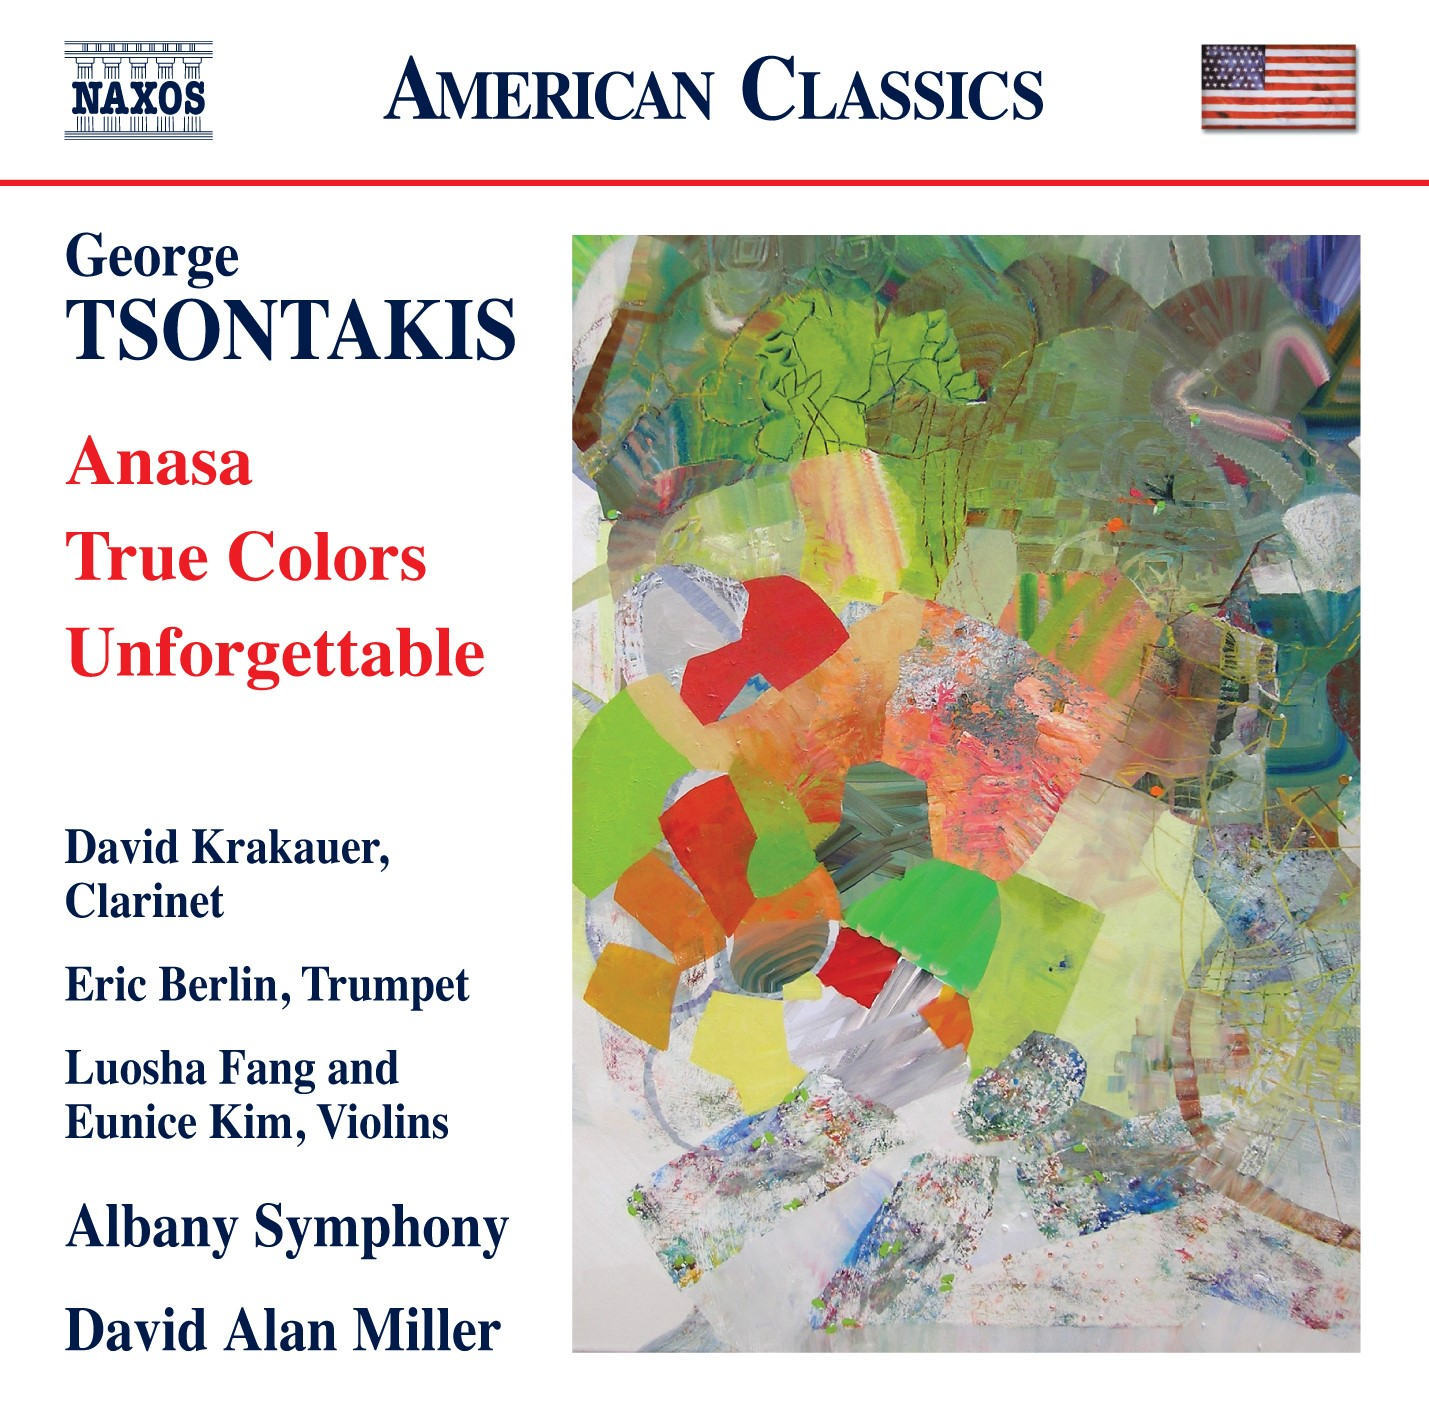 Naxos CD with Eric Berlin's True Colors